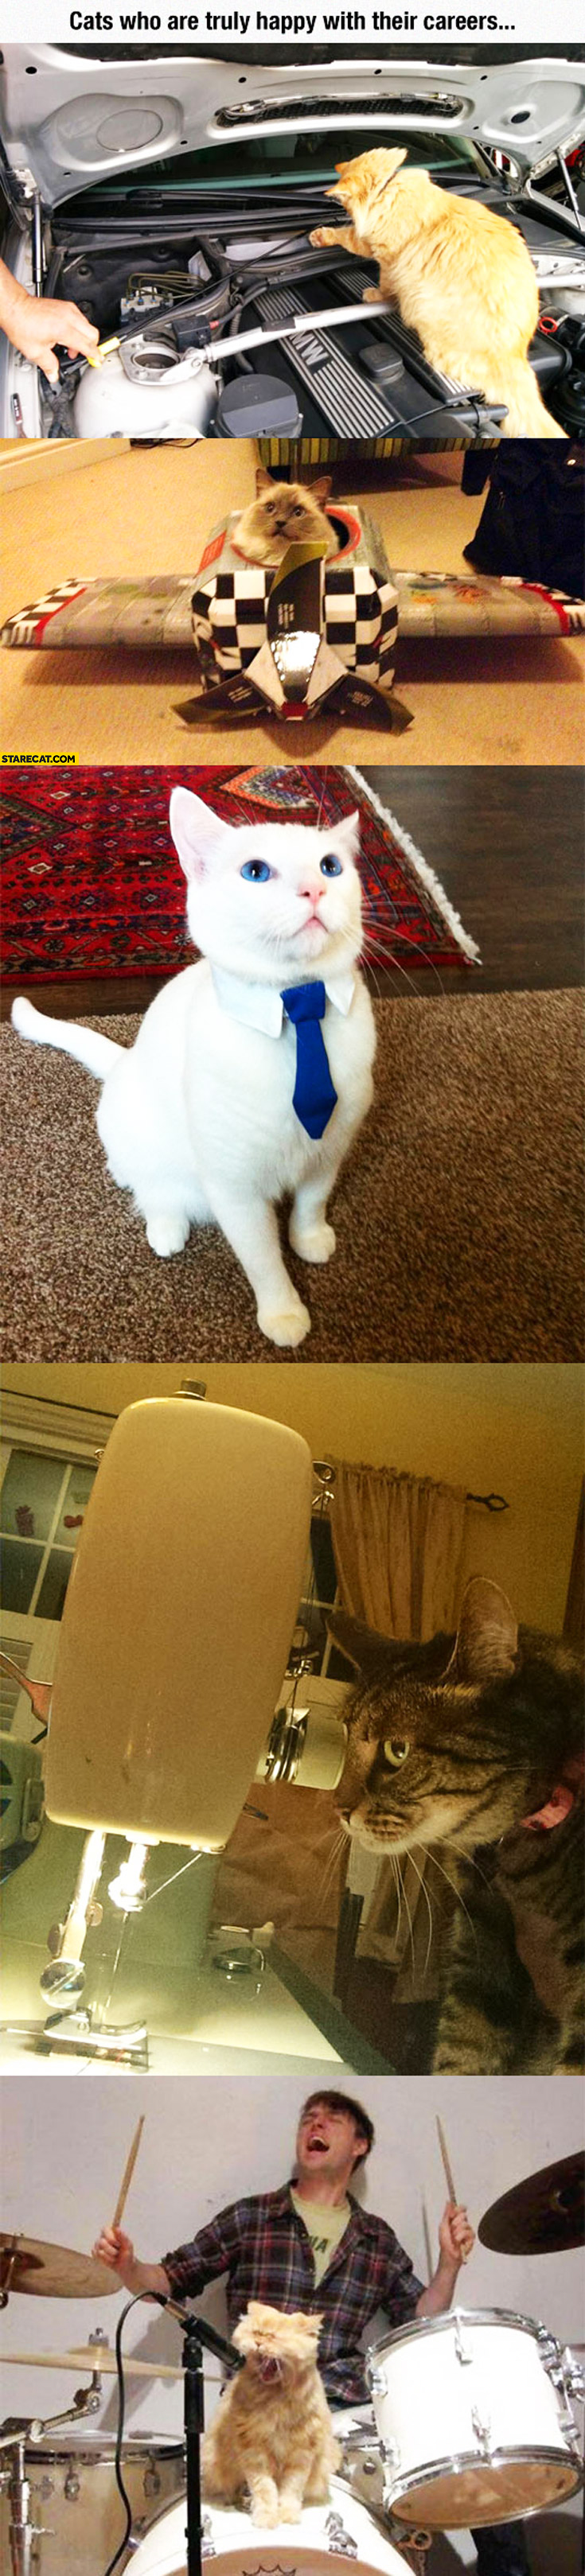 Cats who are truly happy about their careers